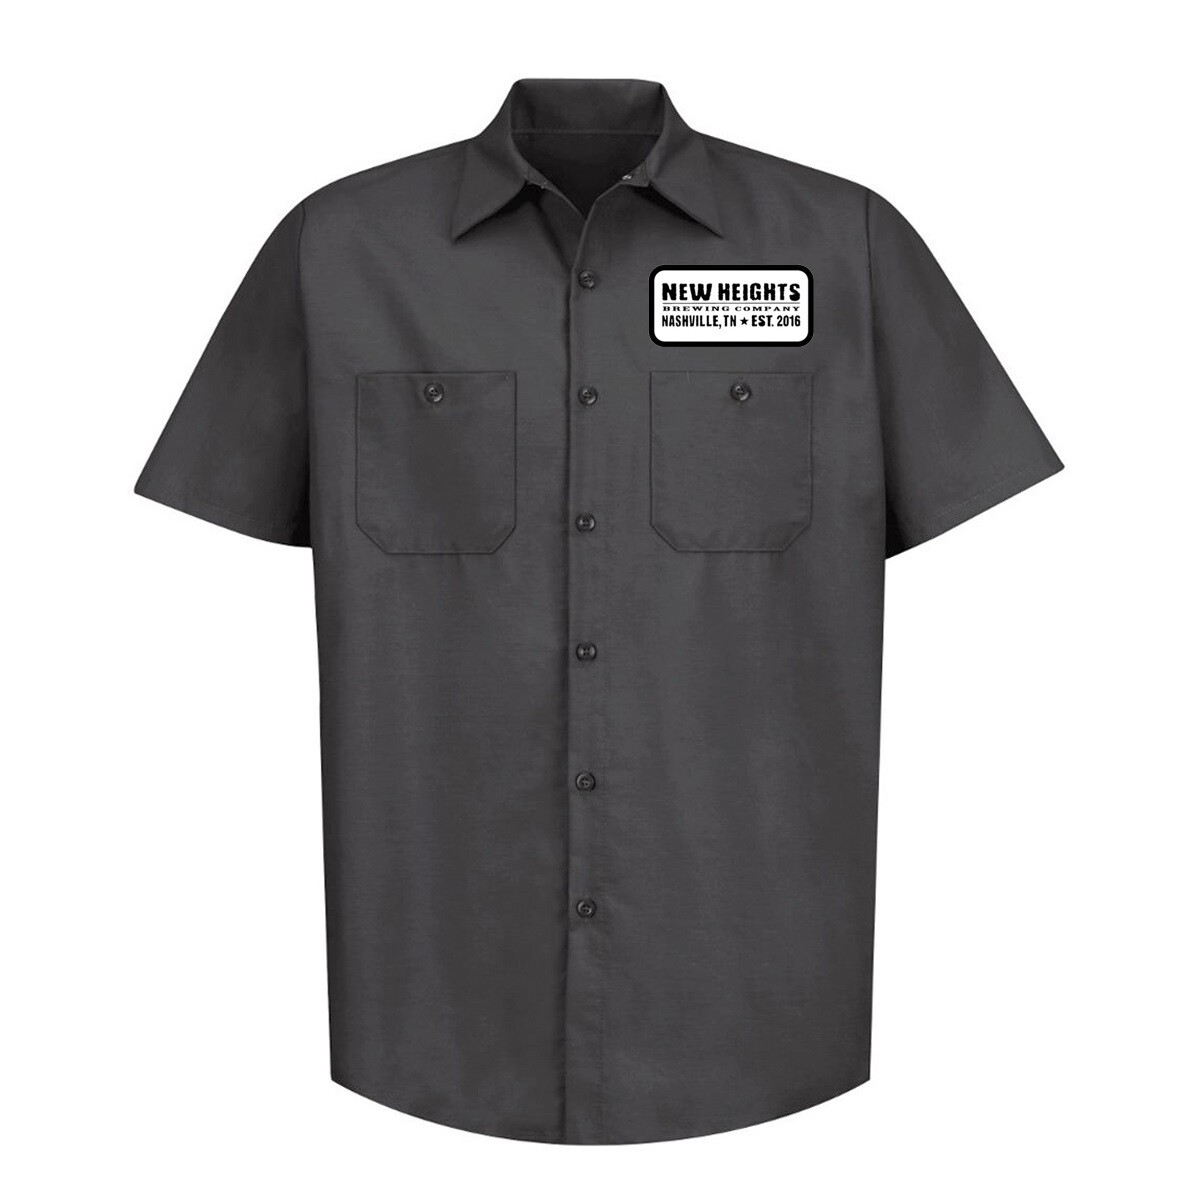 Men's New Heights Black Brewer Shirts w/logo Patch Sewn On Front Full Logo Imprint on back in White Ink.